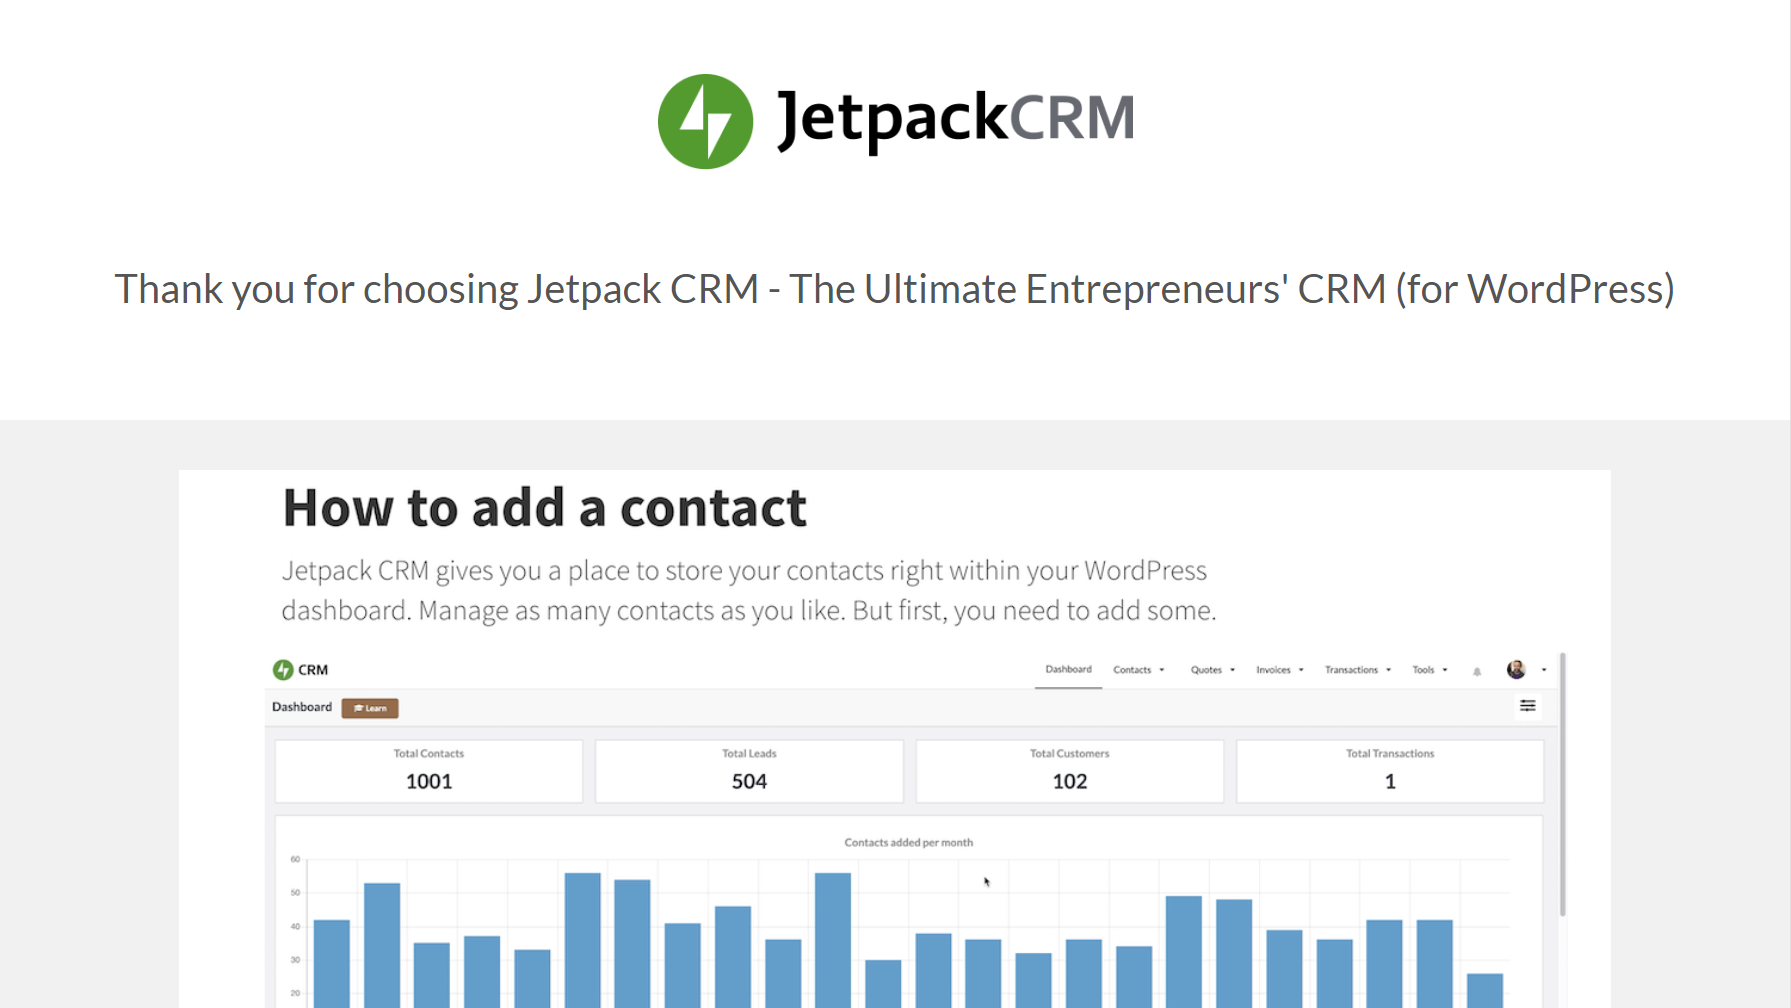 Screenshot of the Jetpack CRM welcome screen.